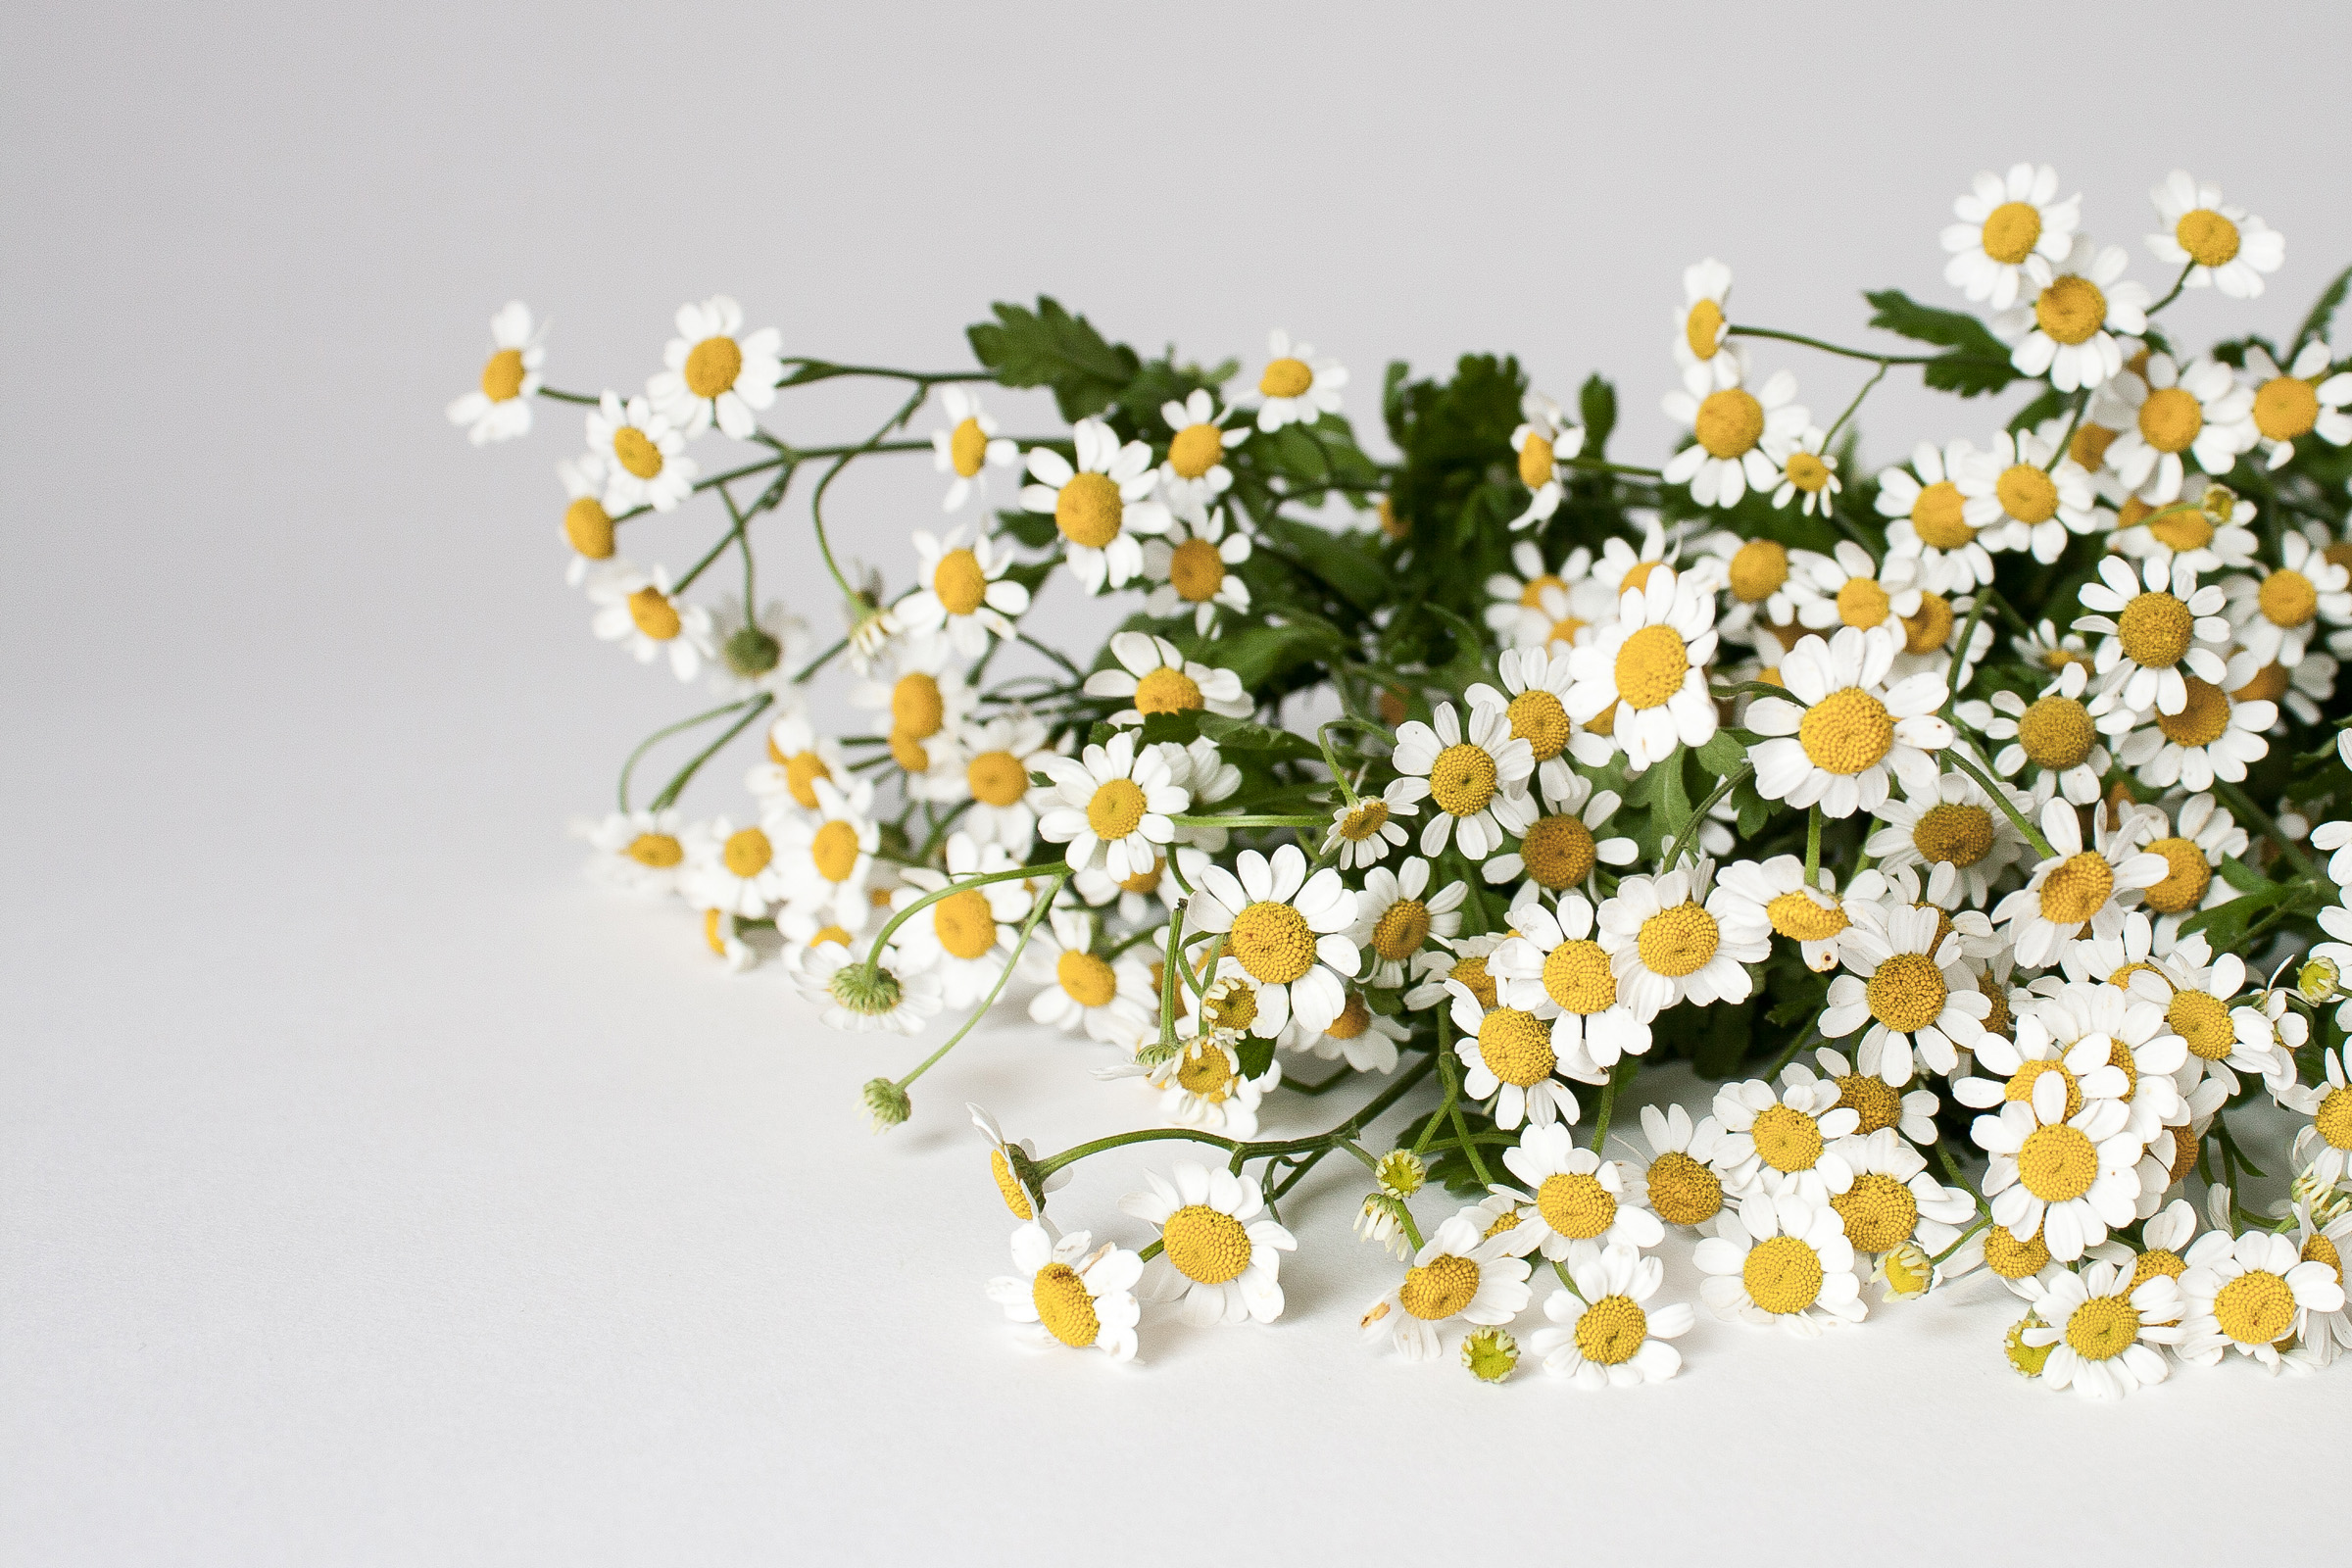 """Chamomile Ode to Lifestyle Change: Busy perfectionist """"woman bosses""""may need to slow down, self-care, self-work, and journal to find true acceptance, contentment and peace."""